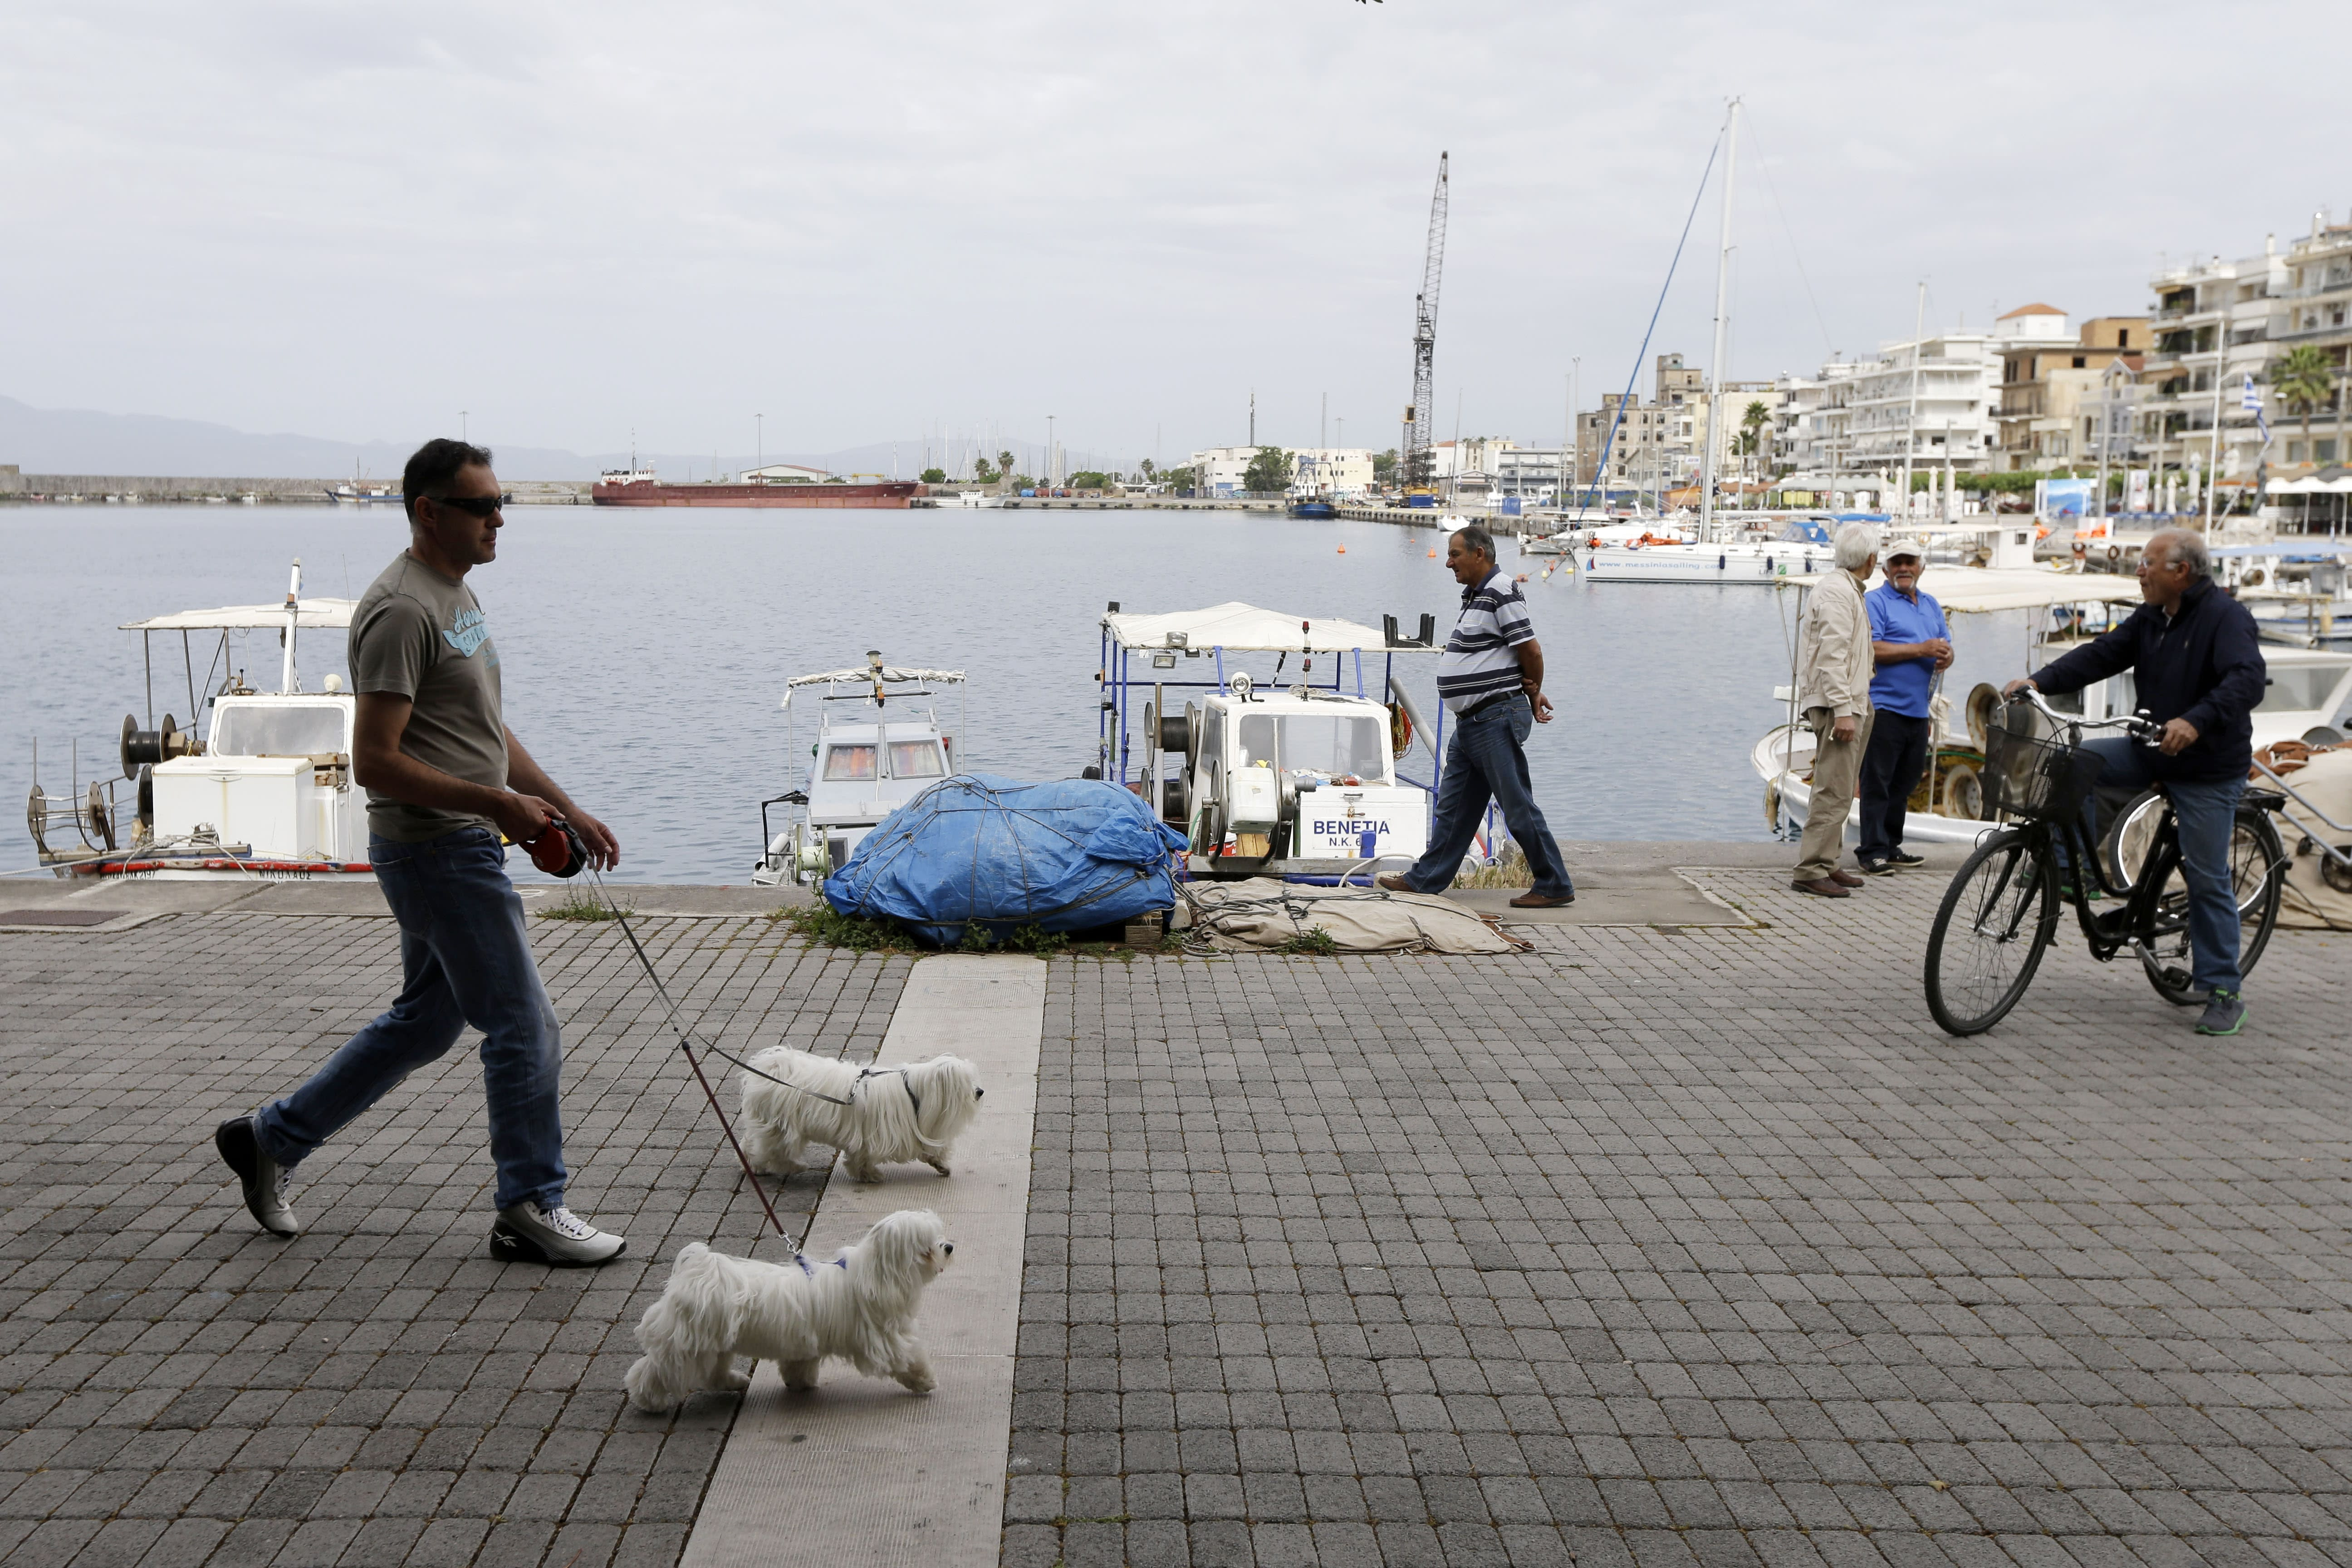 Greece aims to have bailout deal by Sunday